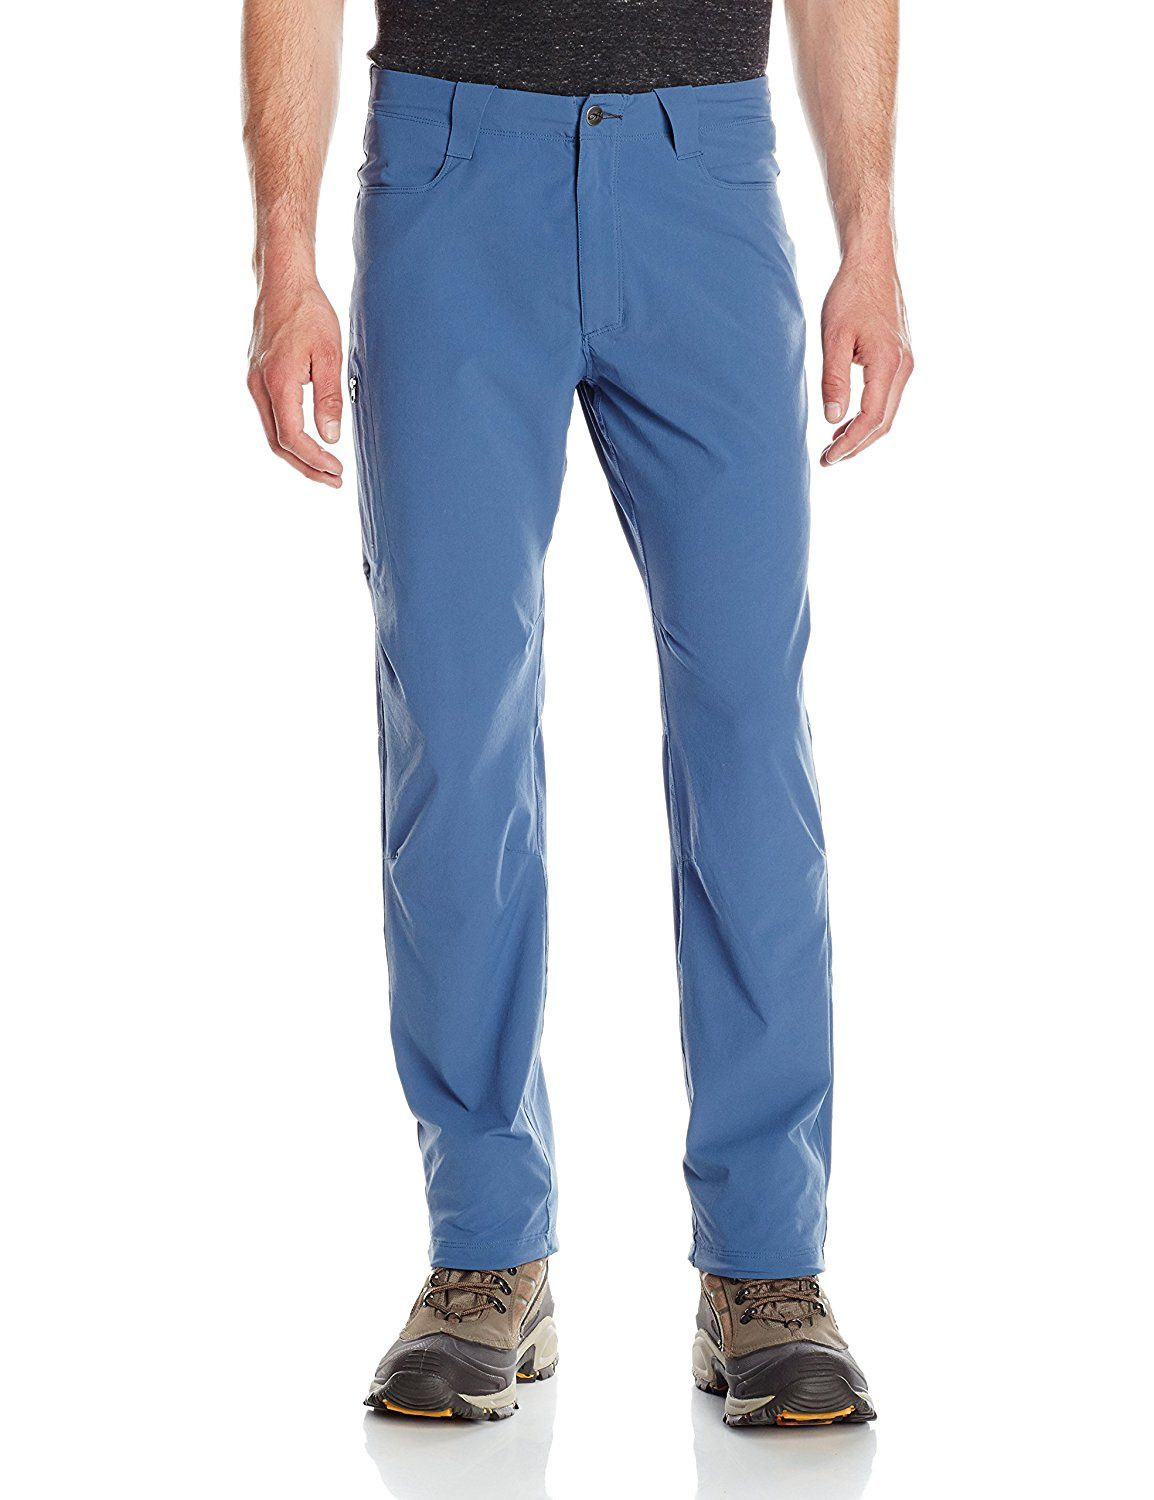 Outdoor Research Men's Ferrosi Pants >>> Insider's special